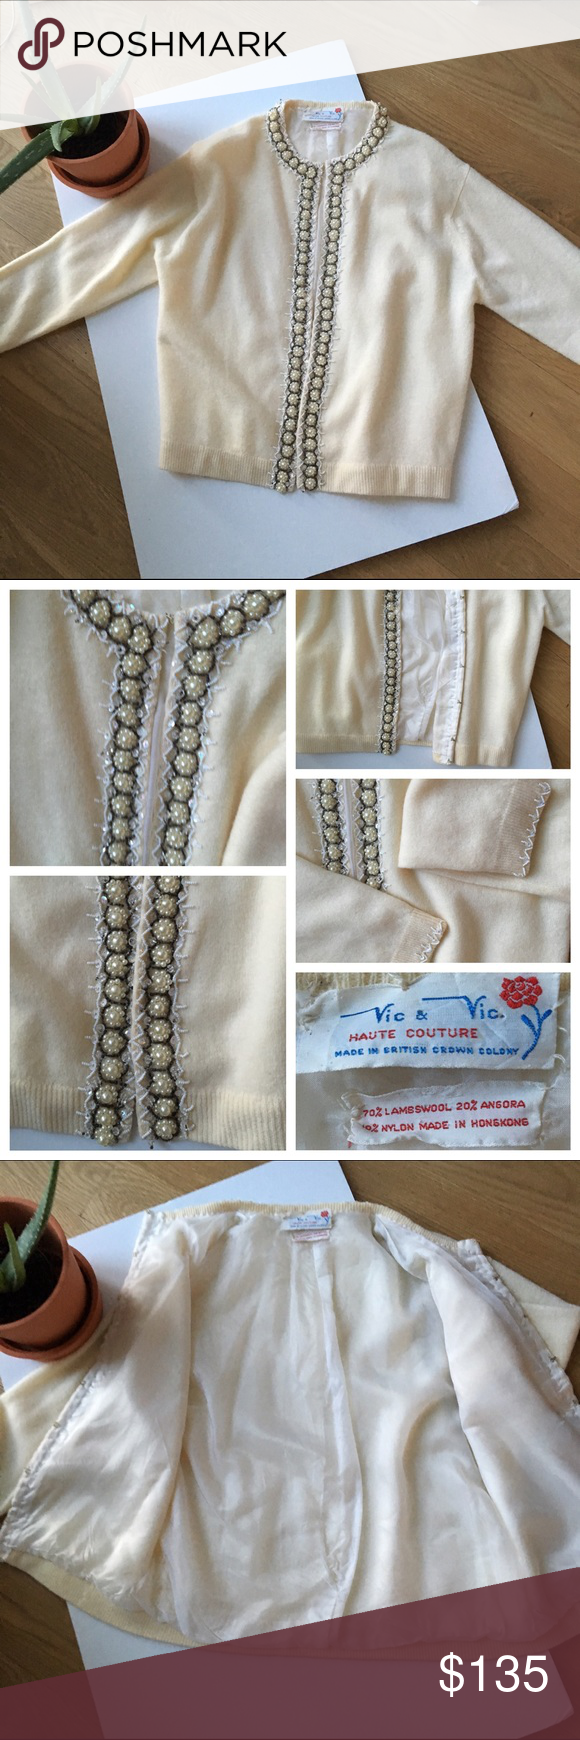 Vintage haute couture sweater Bought and never worn. No stains. New condition. Beautiful cream with pearls and beading. Hook enclosure on front Sweaters Cardigans